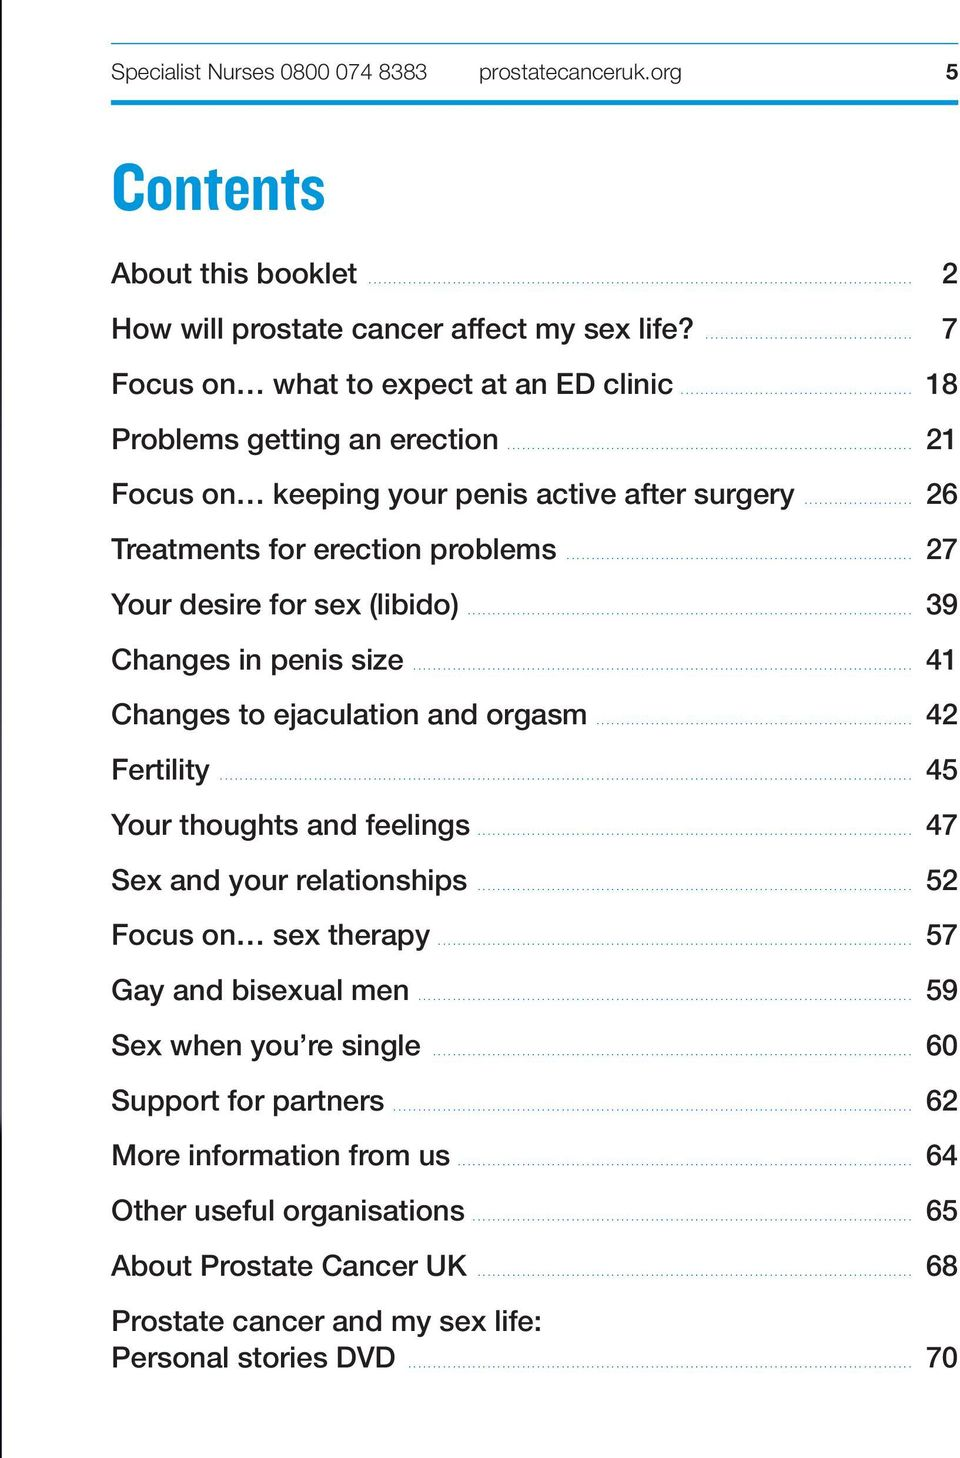 ... 41 Changes to ejaculation and orgasm.... 42 Fertility.... 45 Your thoughts and feelings.... 47 Sex and your relationships.... 52 Focus on sex therapy.... 57 Gay and bisexual men.